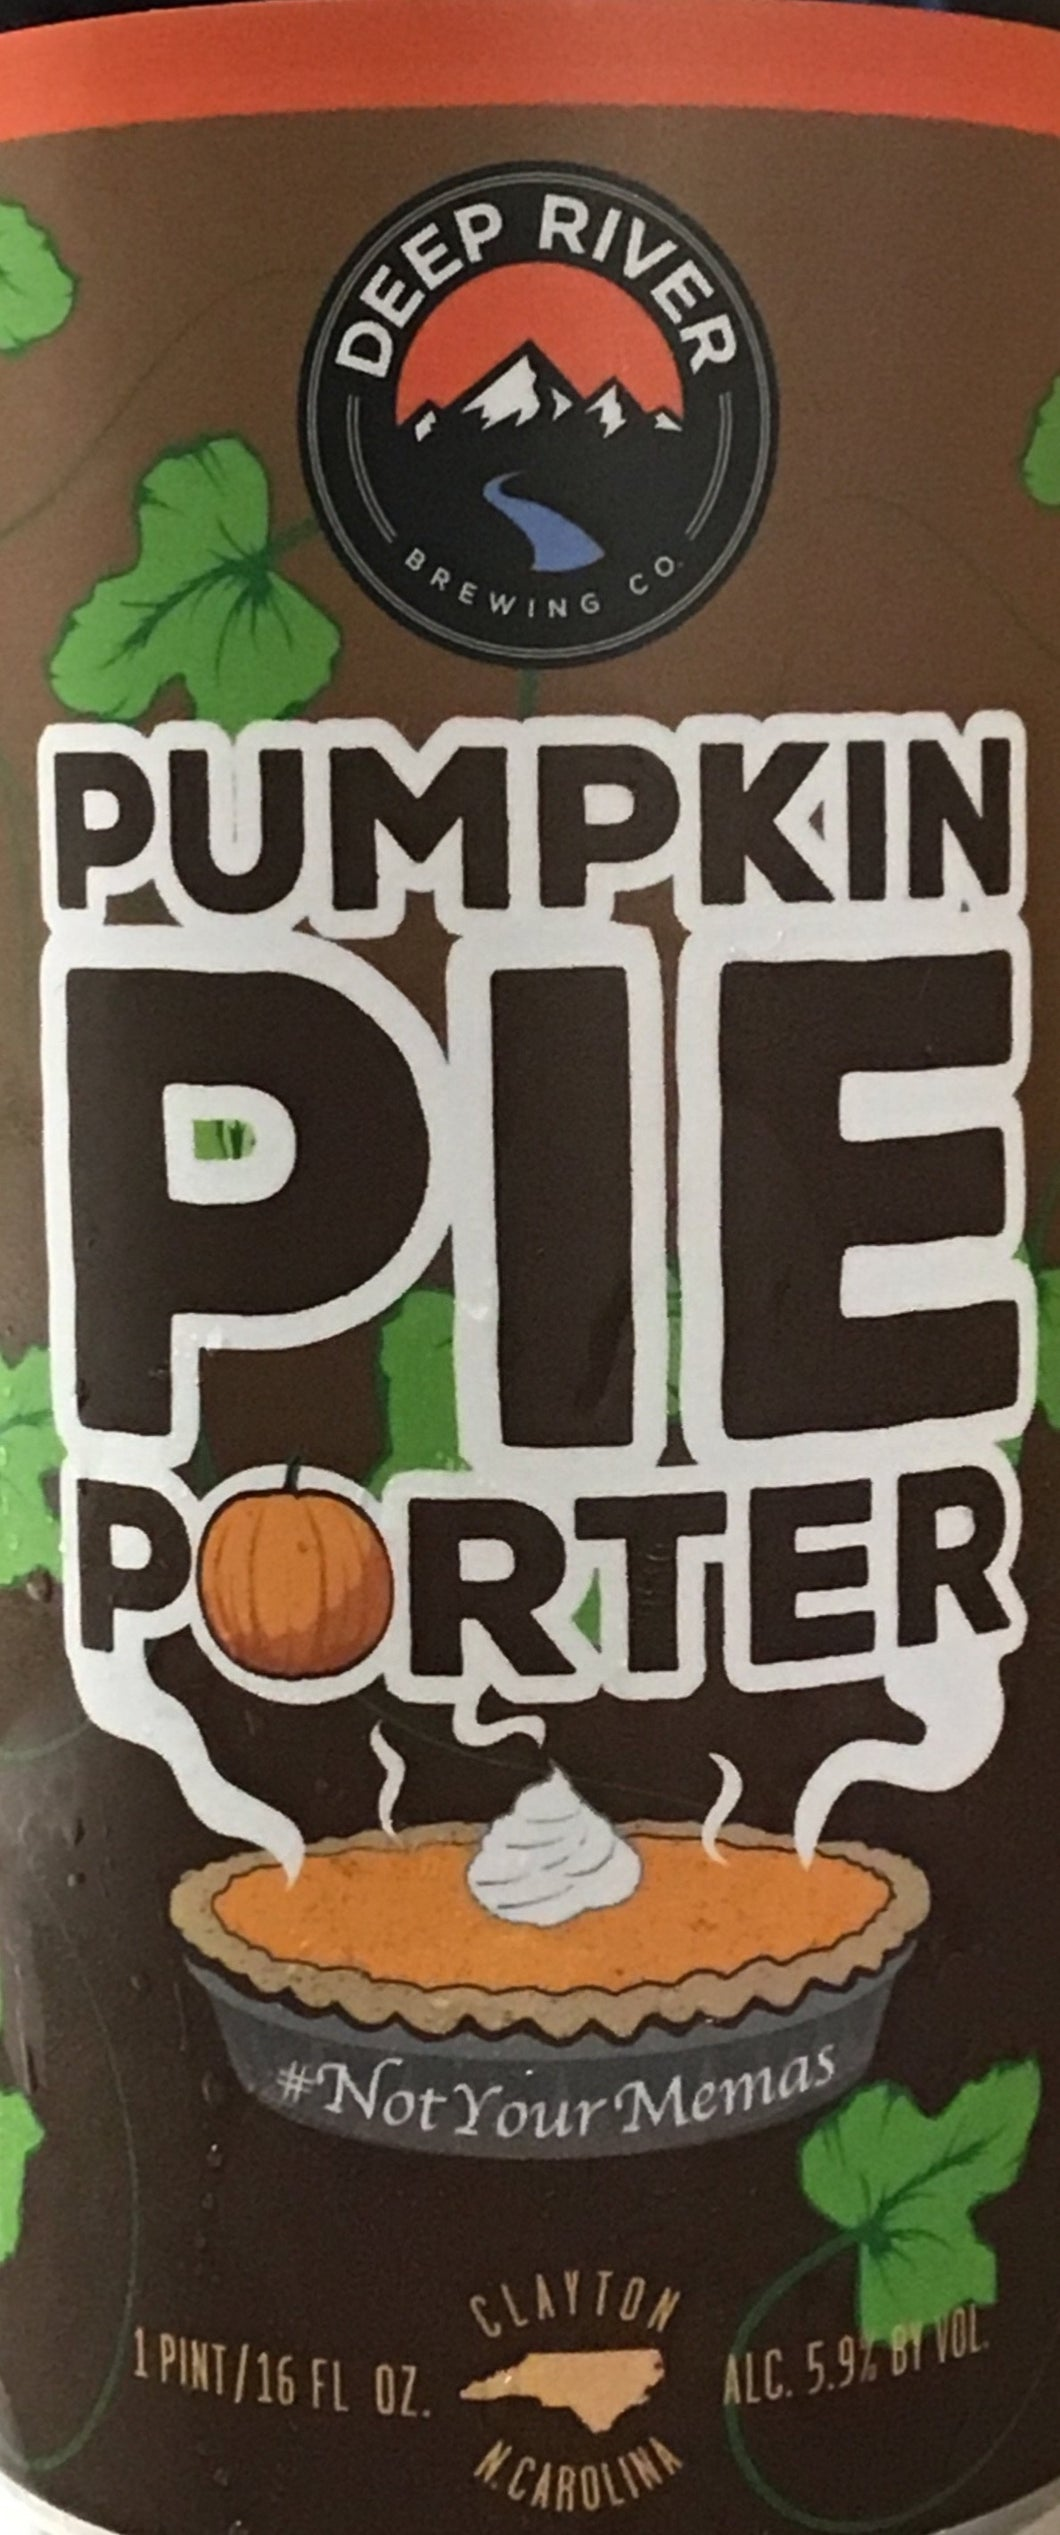 Deep River - Pumpkin Pie Porter - 4 pack